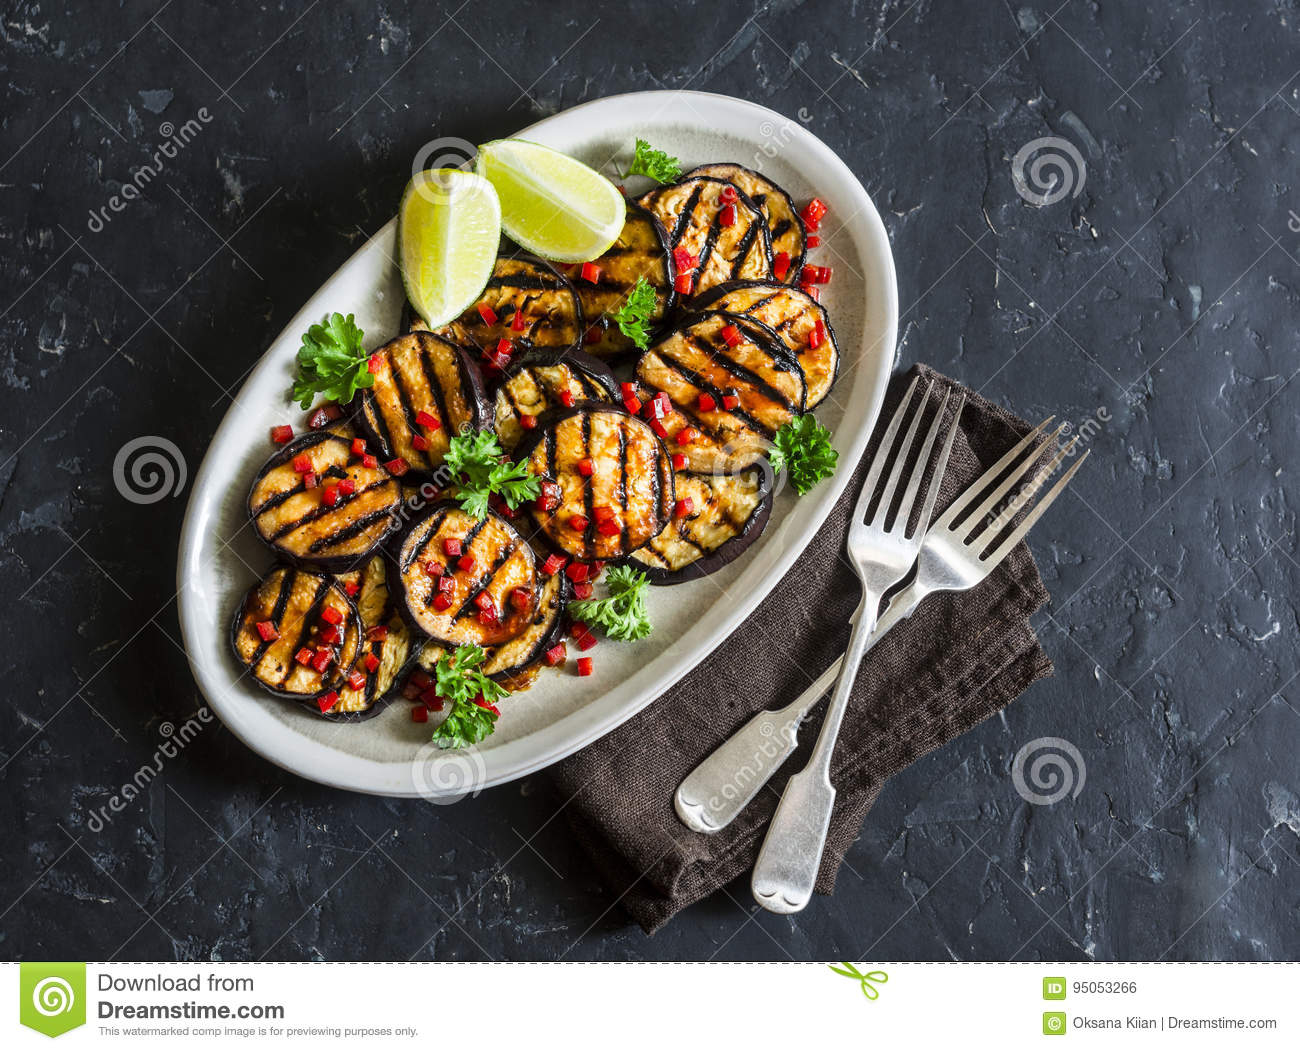 Soy sauce and ginger marinated grilled eggplant on a dark background, top view. Delicious vegetarian appetizer or snack.